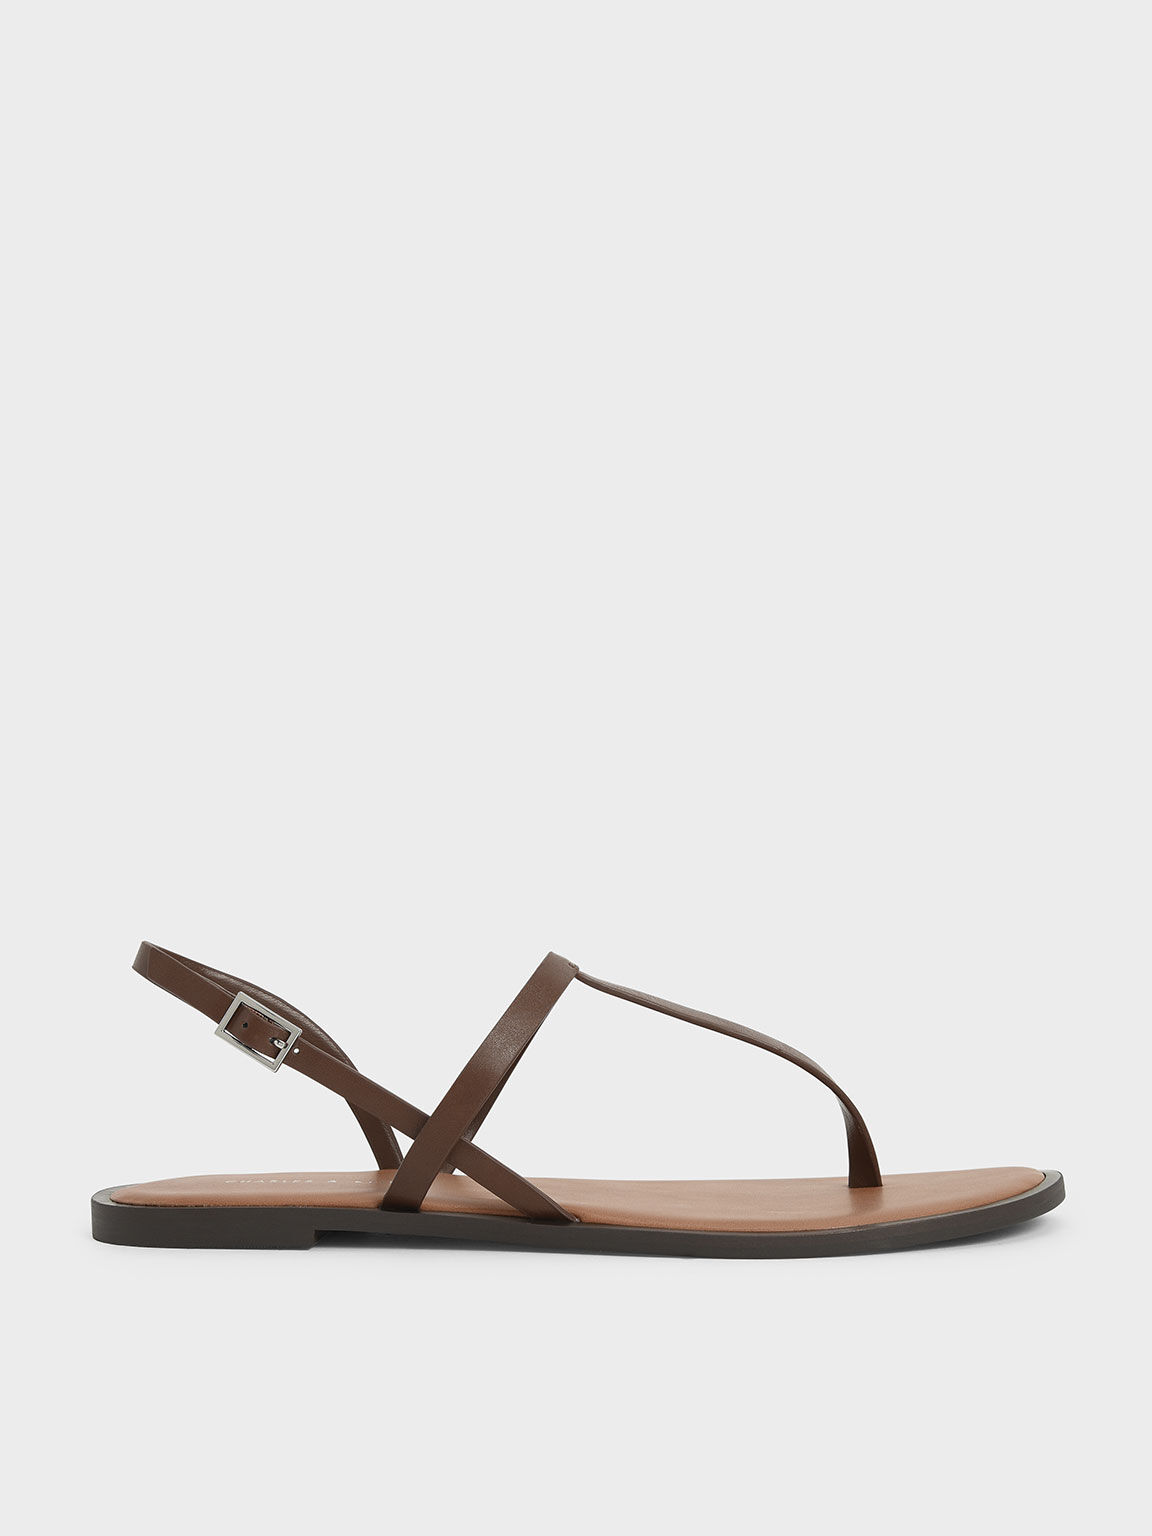 T-Bar Slingback Sandals, Brown, hi-res